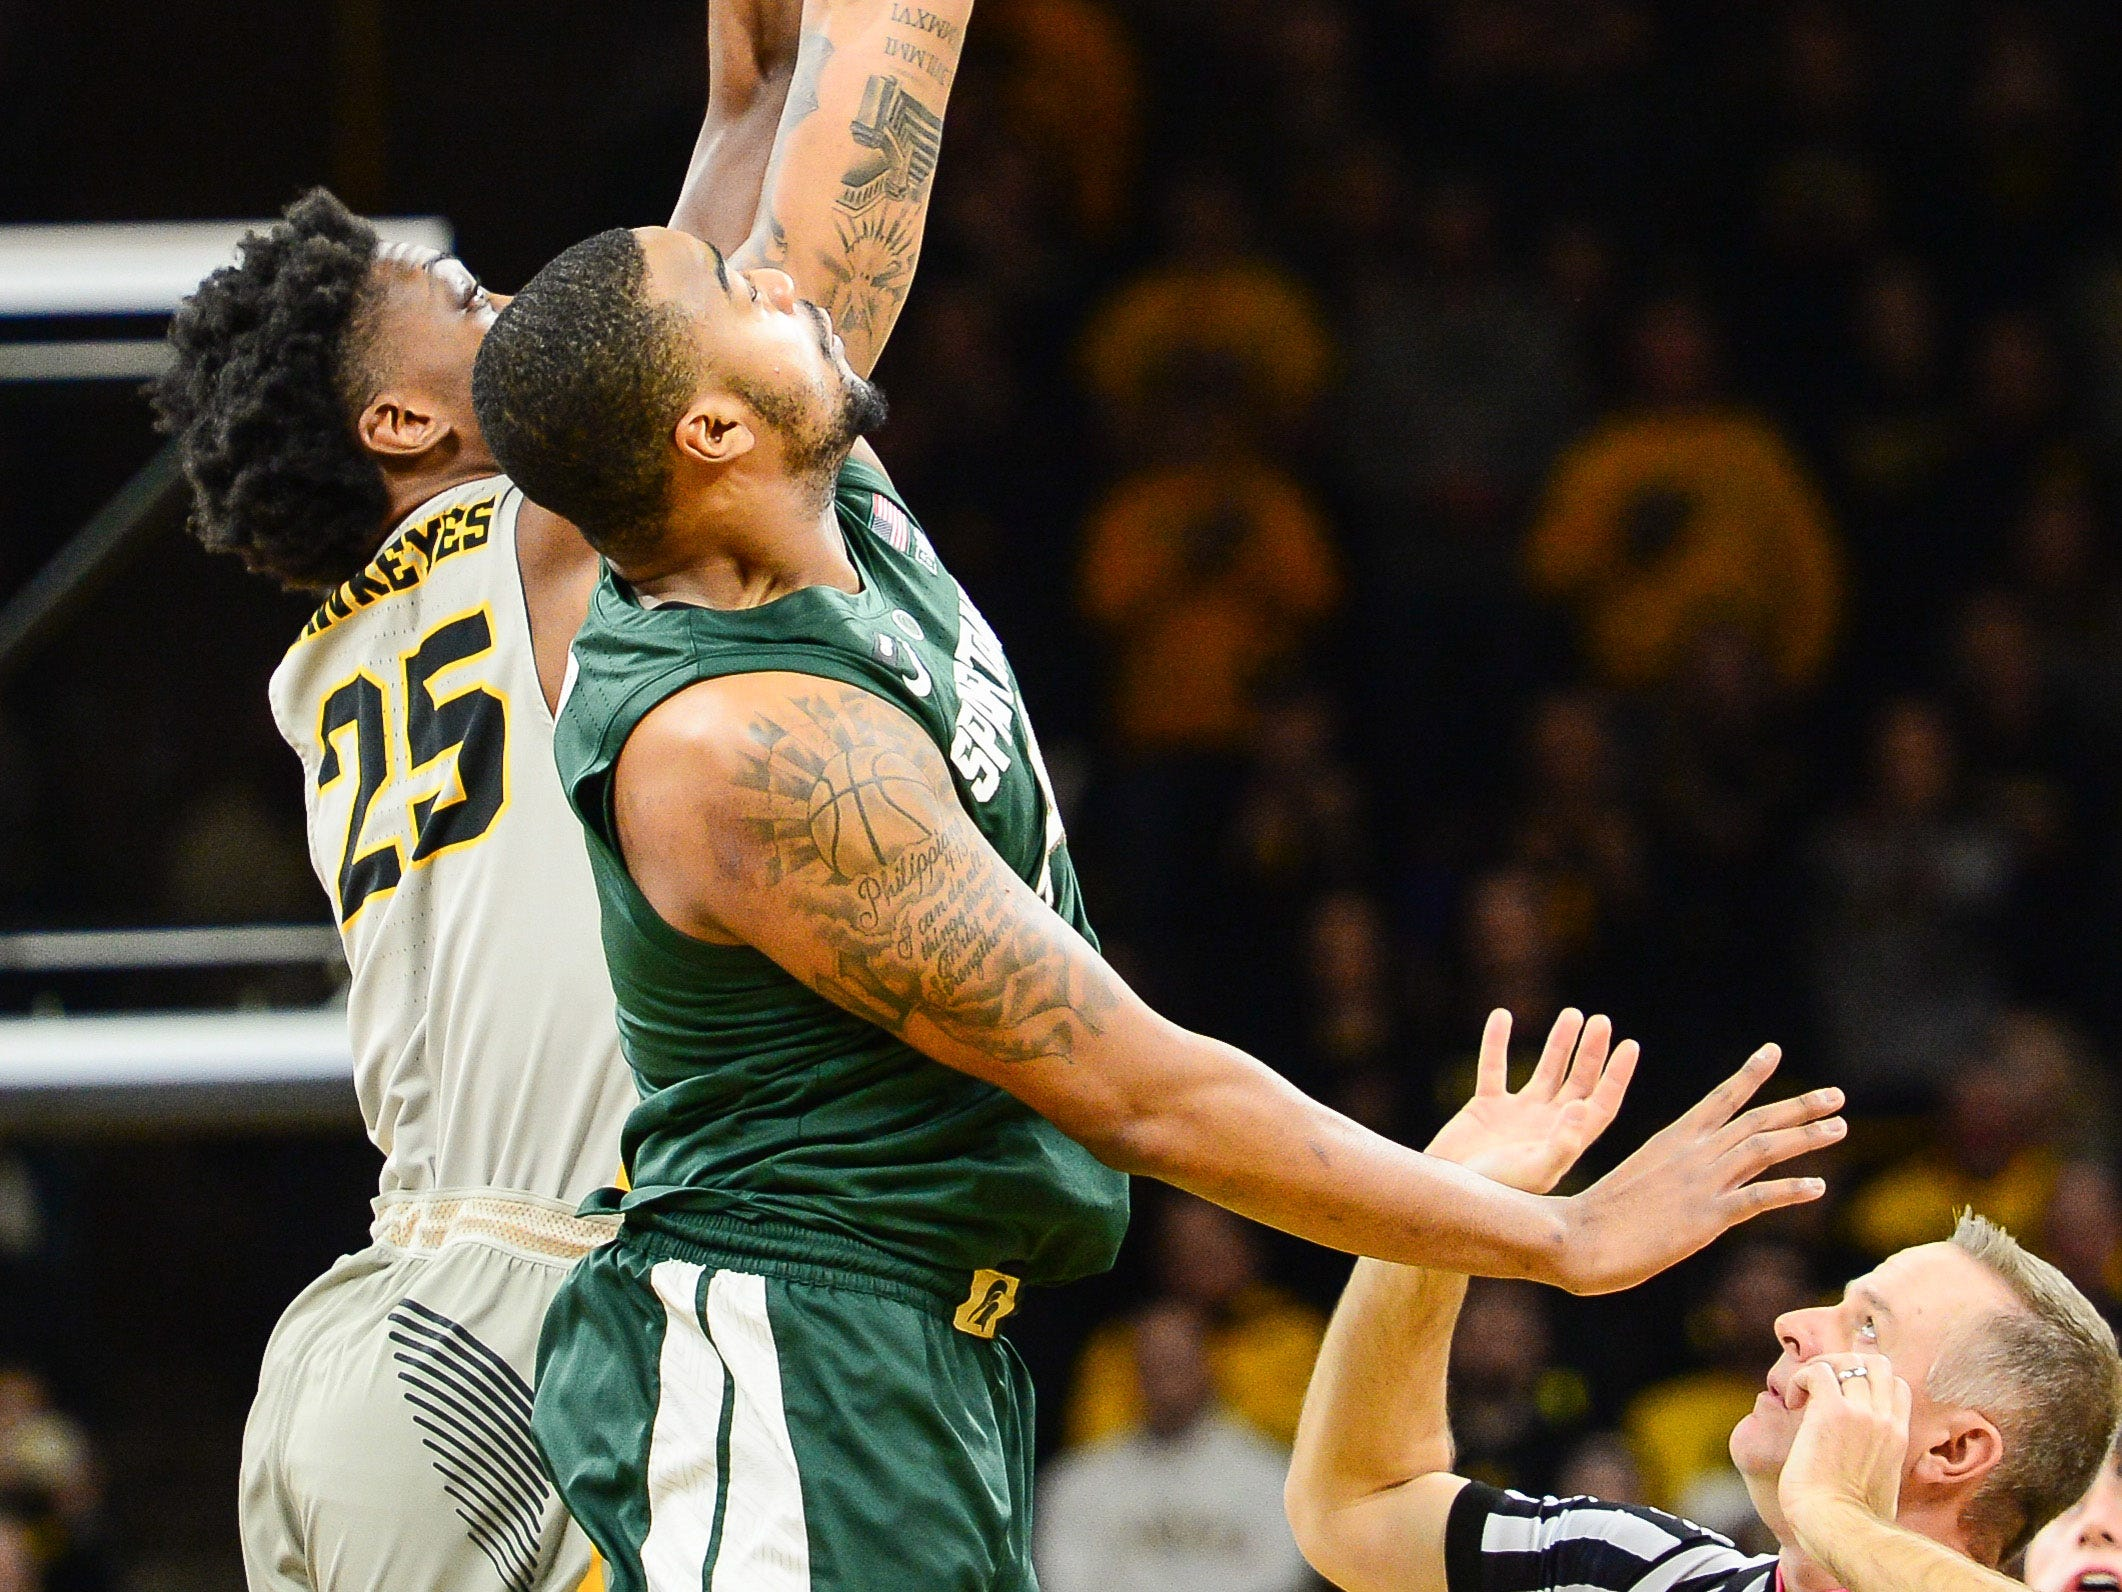 Iowa Hawkeyes forward Tyler Cook (25) and Michigan State Spartans forward Nick Ward (44) battle for the opening tipoff during the first half at Carver-Hawkeye Arena.